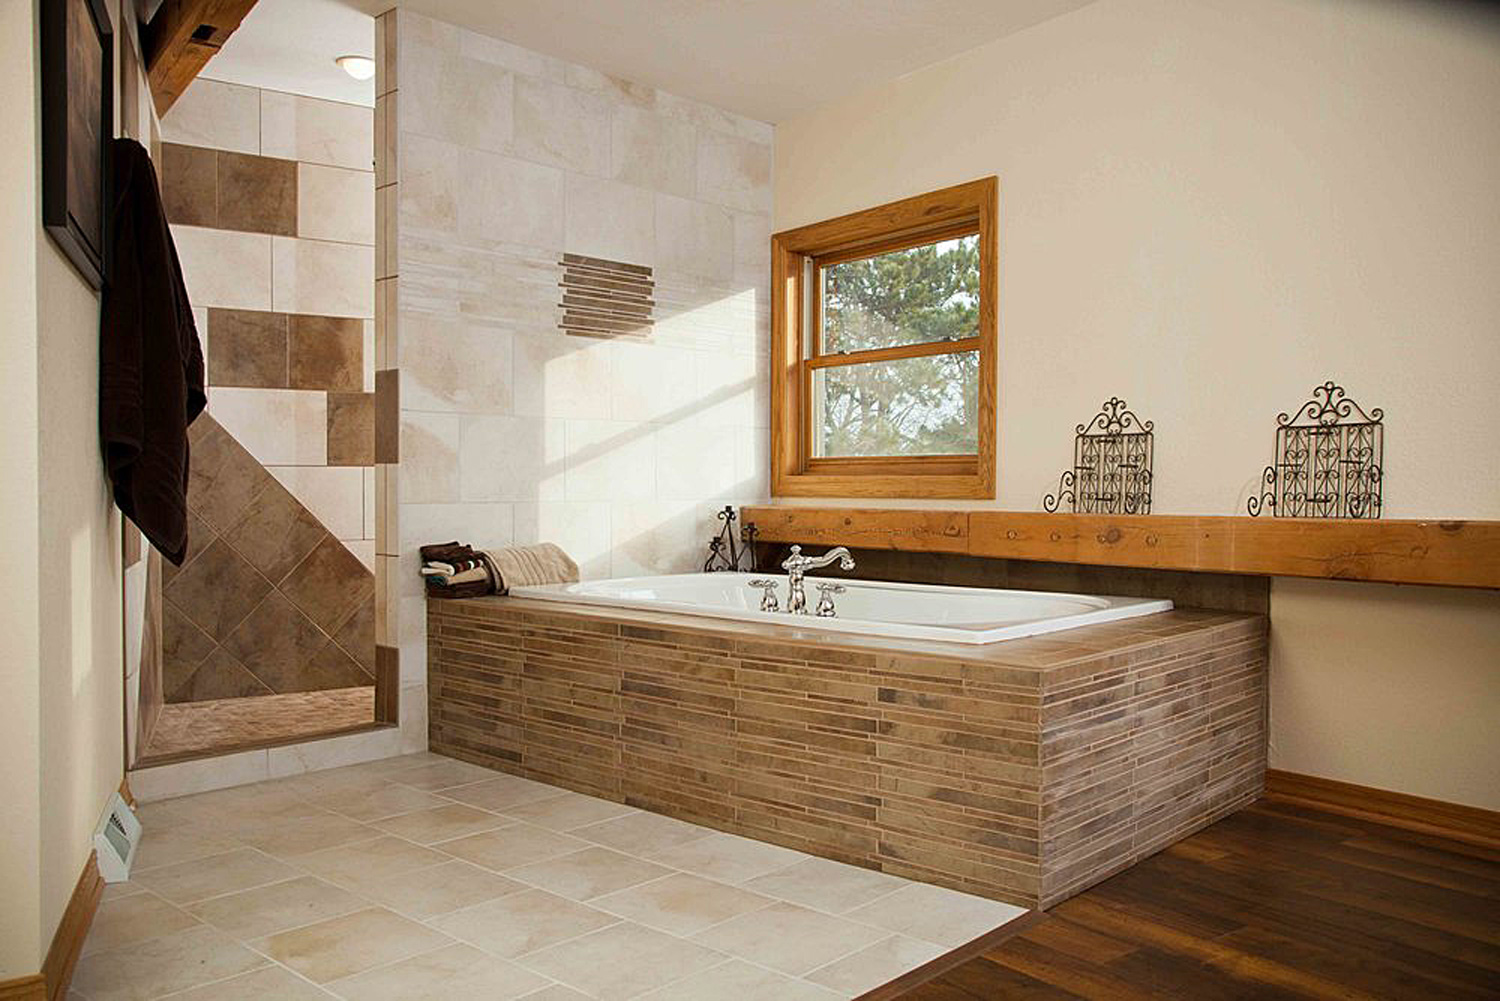 Timber Frame Master Bath — Degnan Design-Build-Remodel